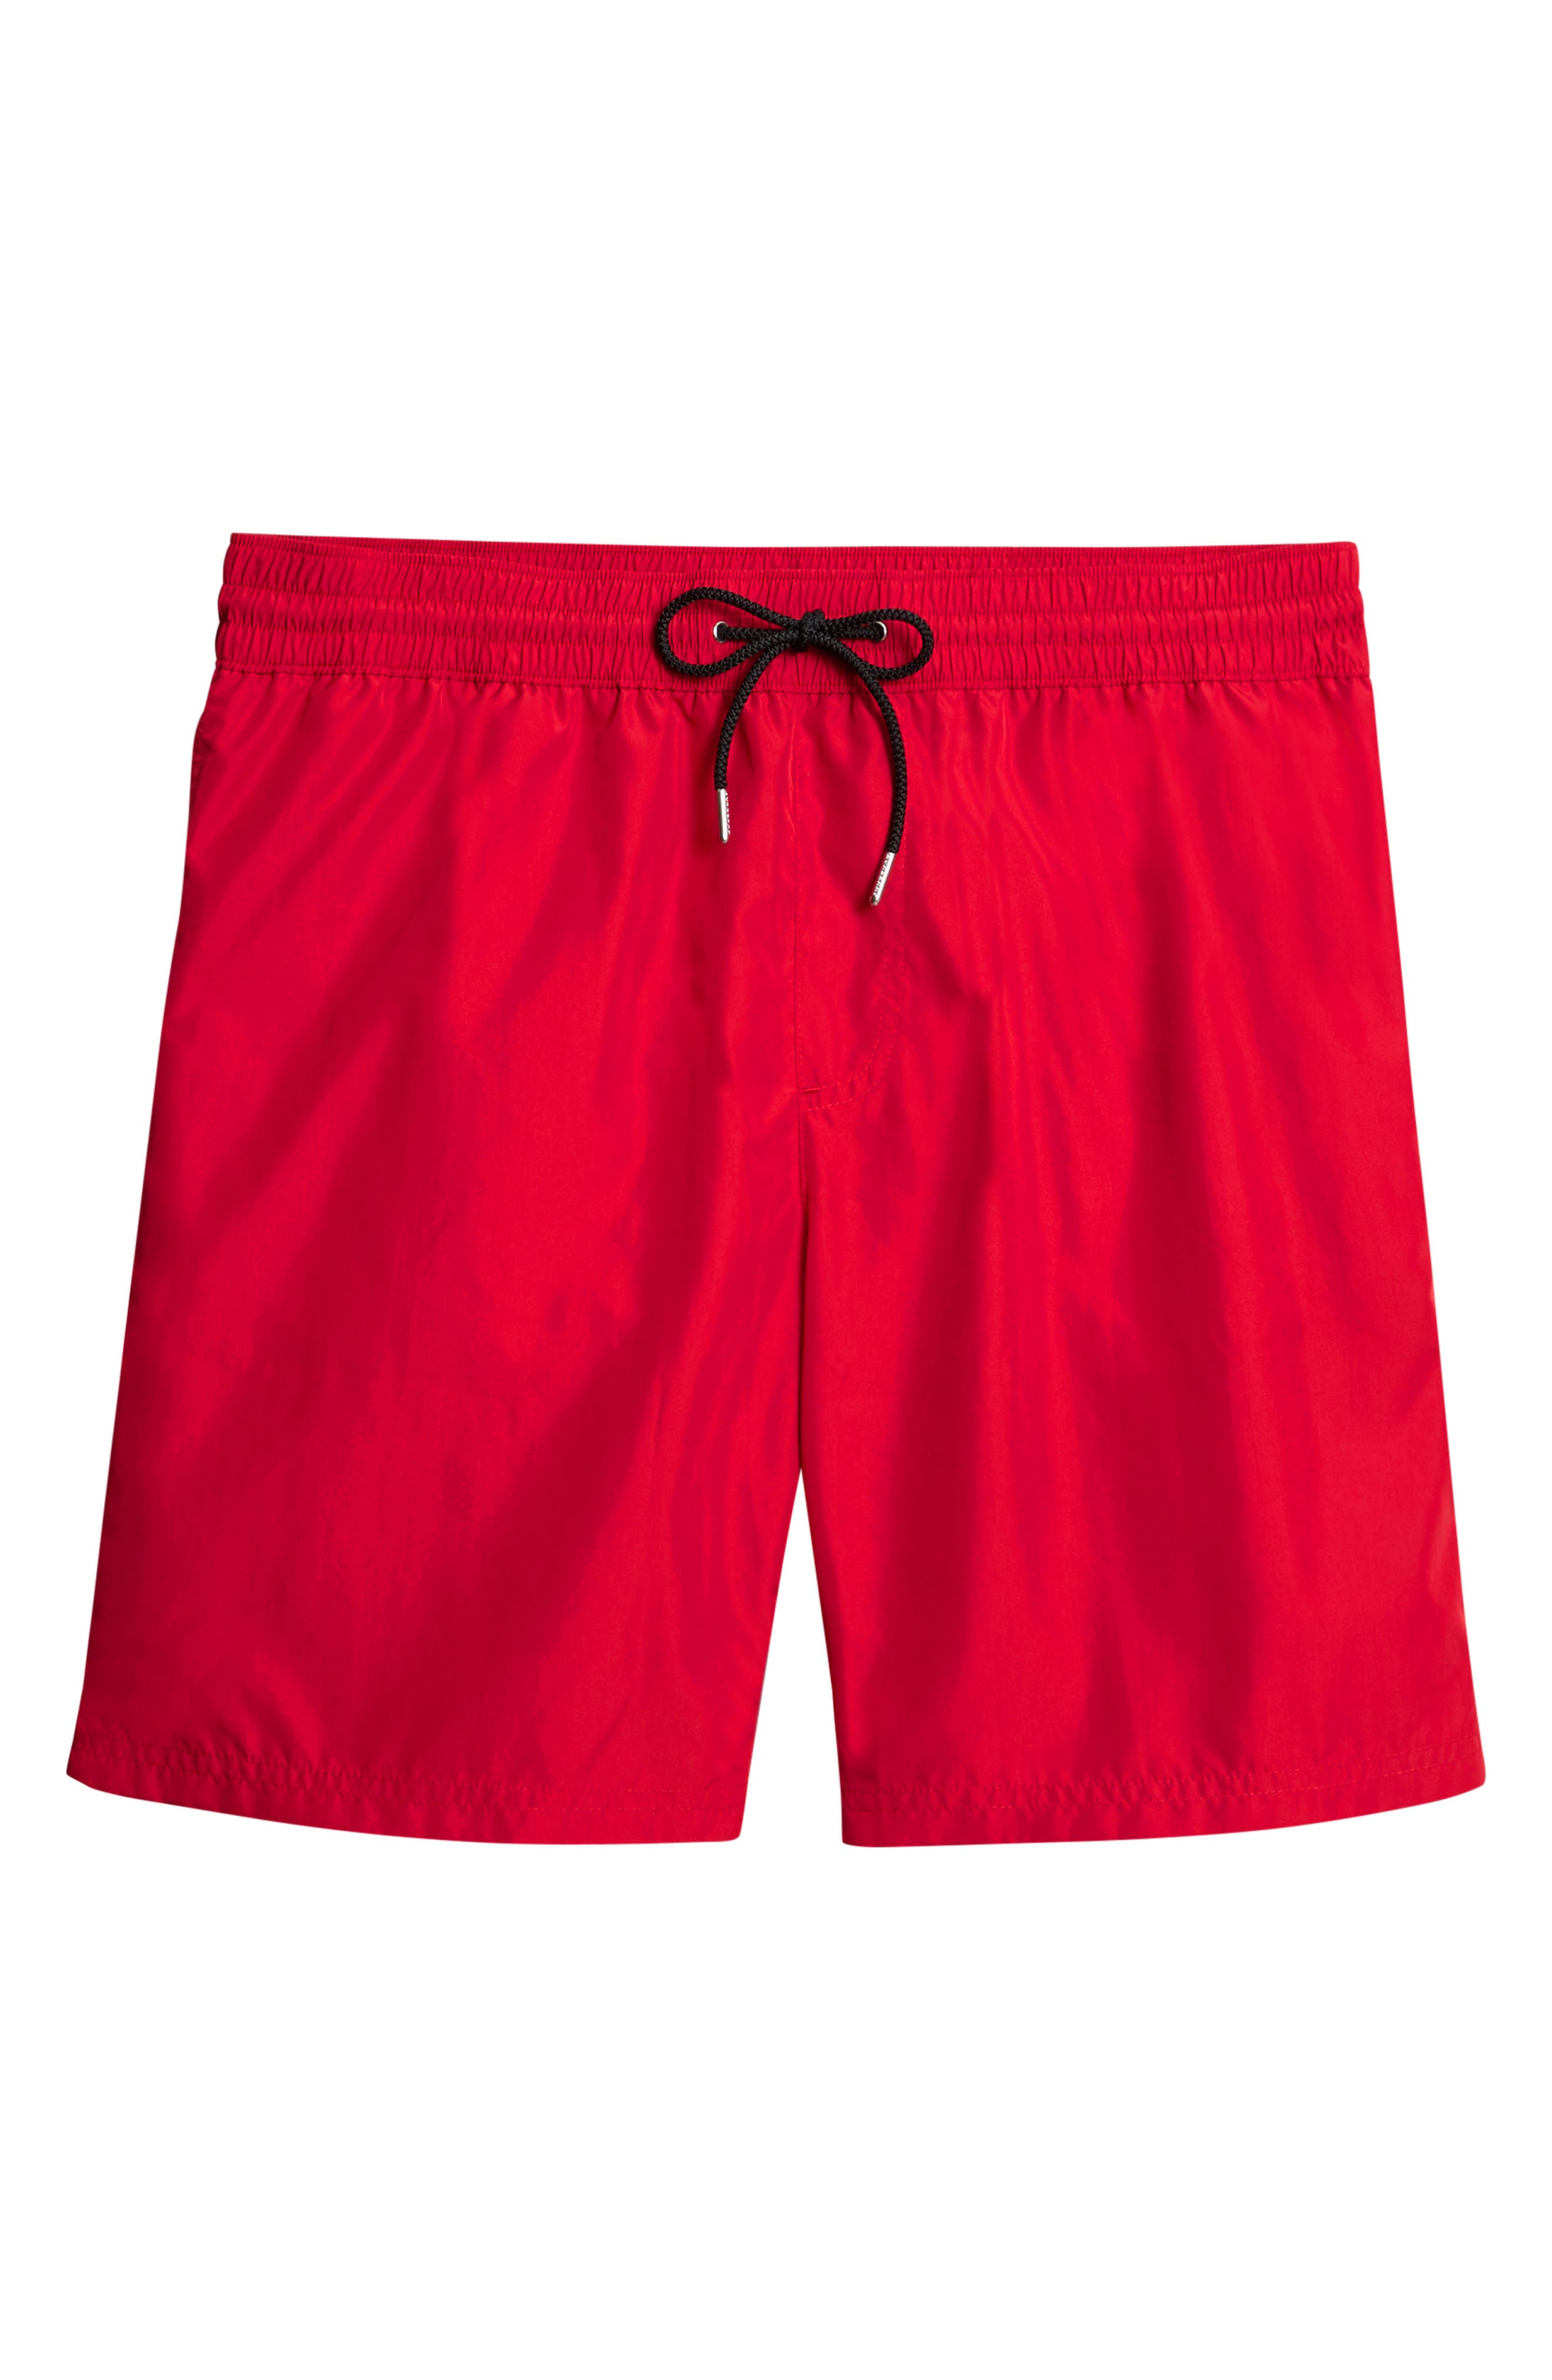 Guildes Swim Trunks,                             Alternate thumbnail 6, color,                             PARADE RED